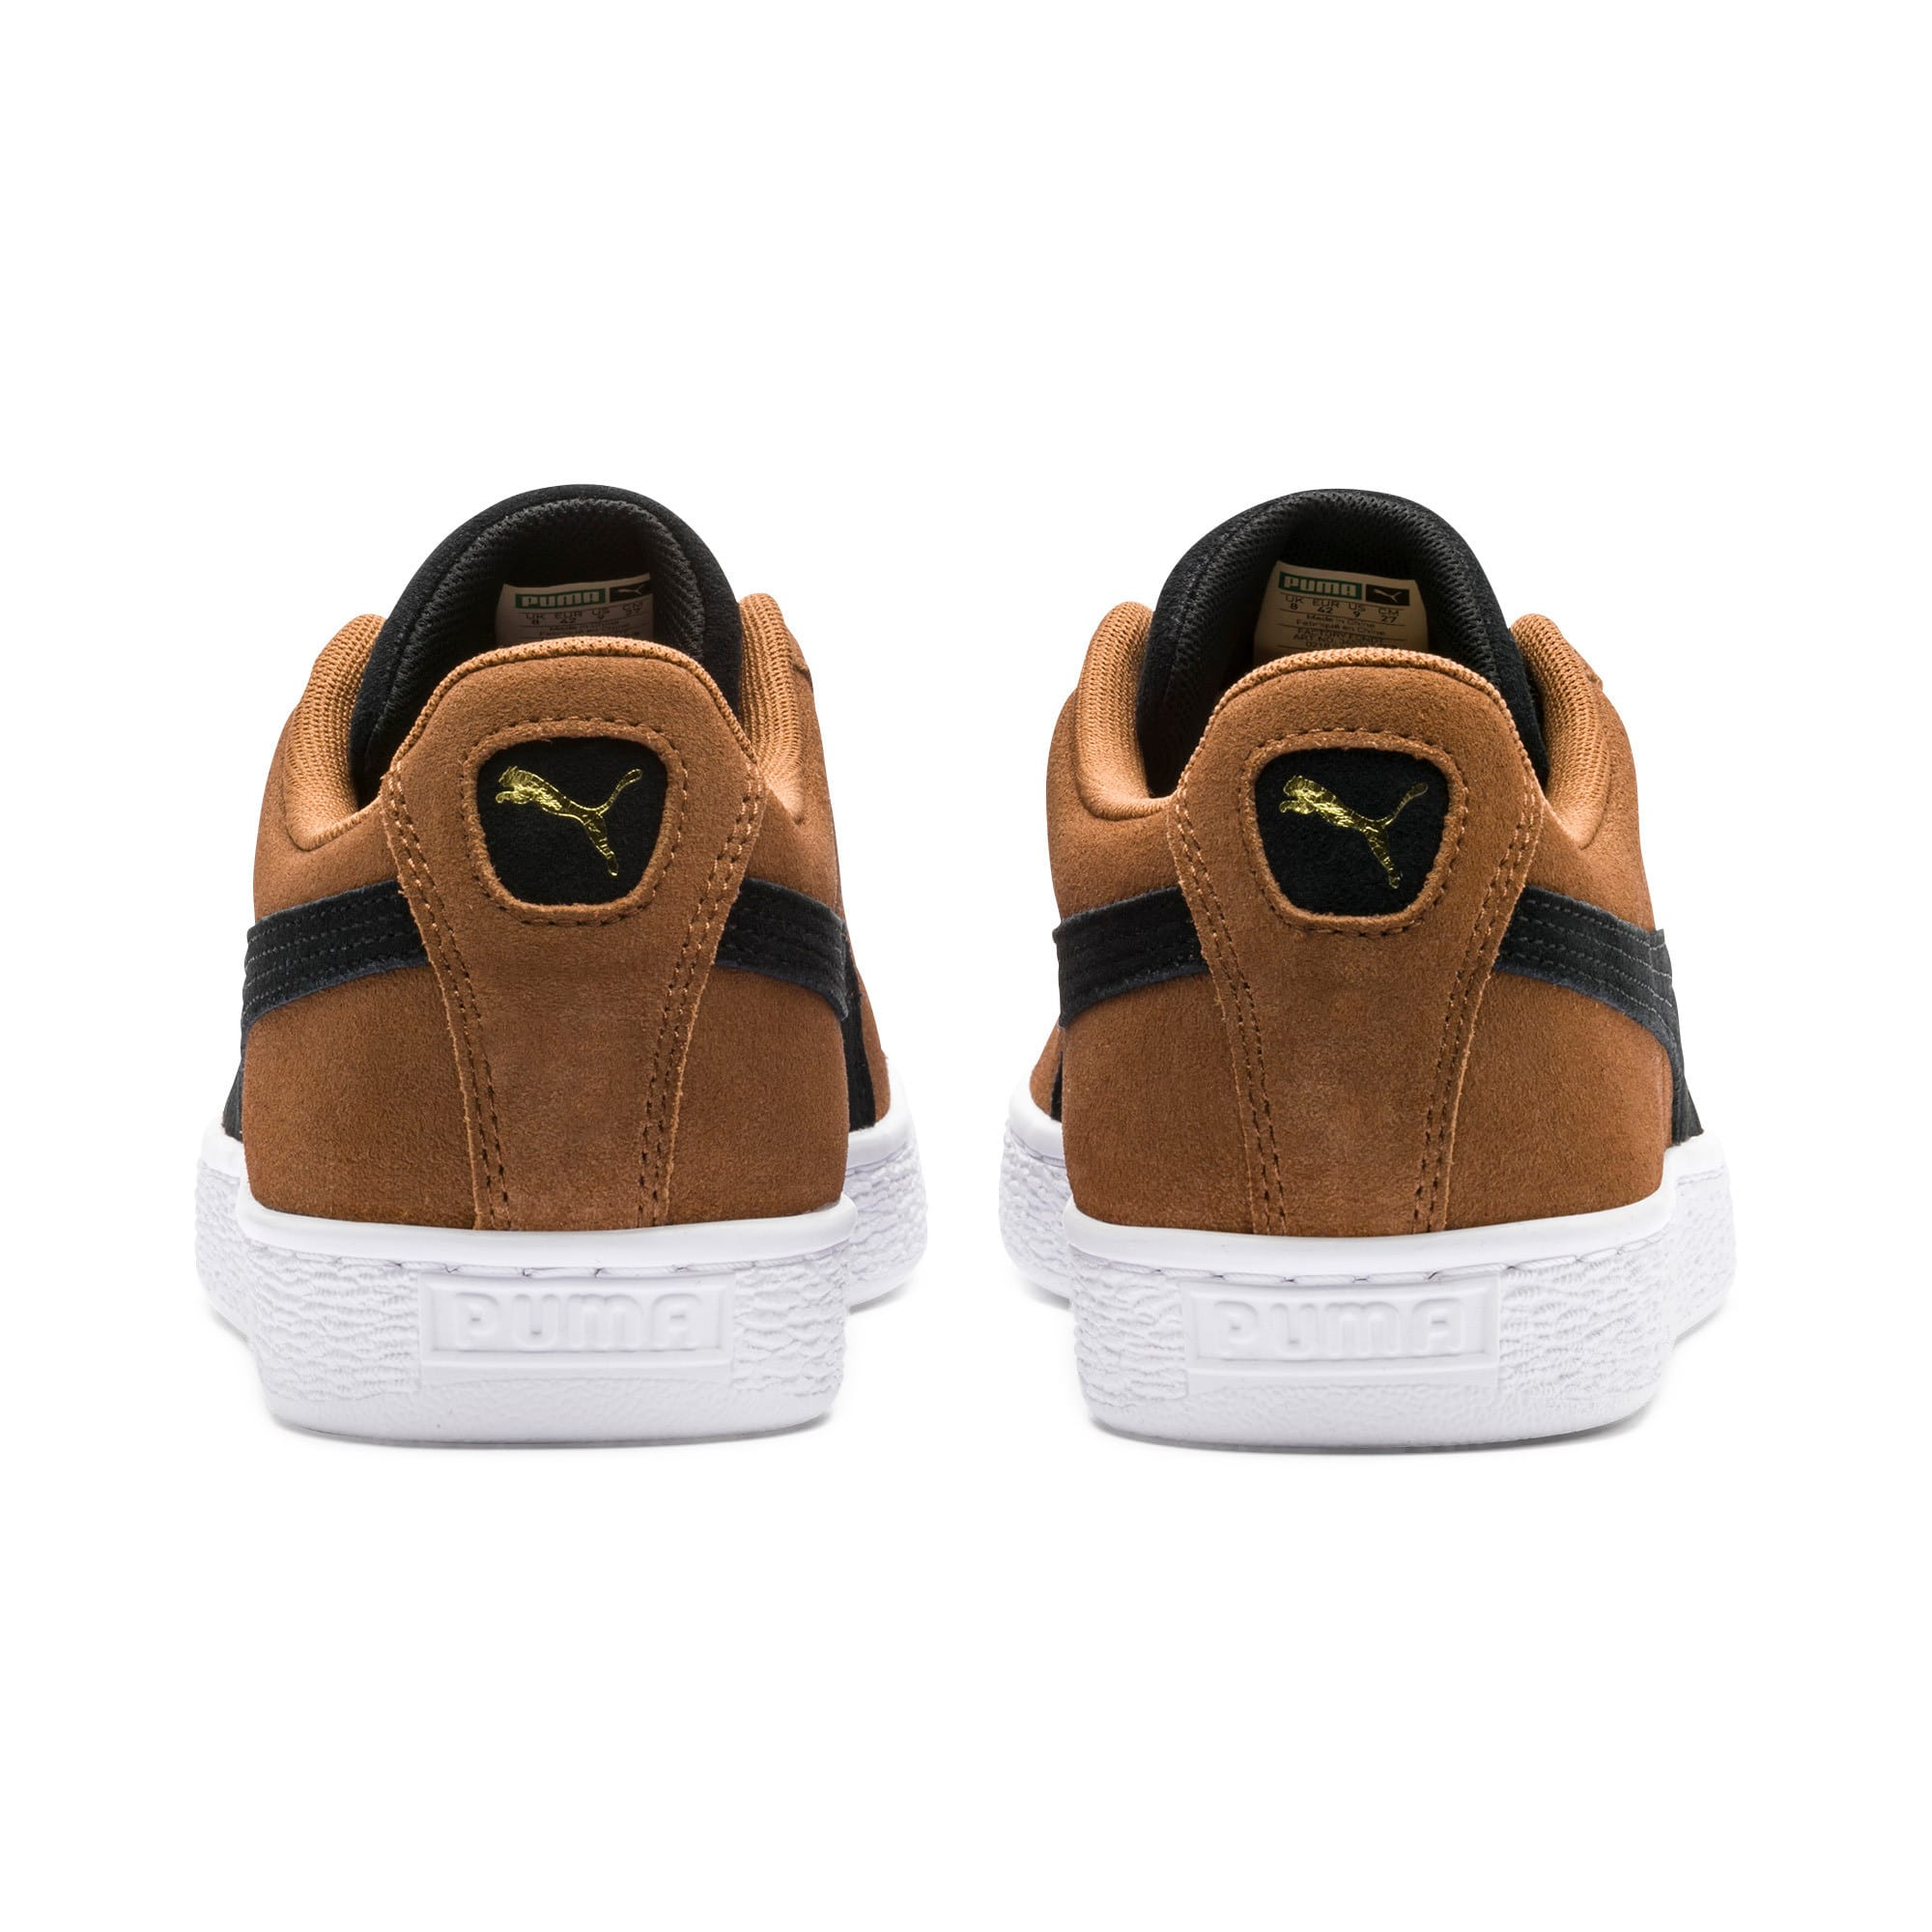 Thumbnail 4 of Suede Classic Sneakers, Dachsund-Puma Black-P Wht, medium